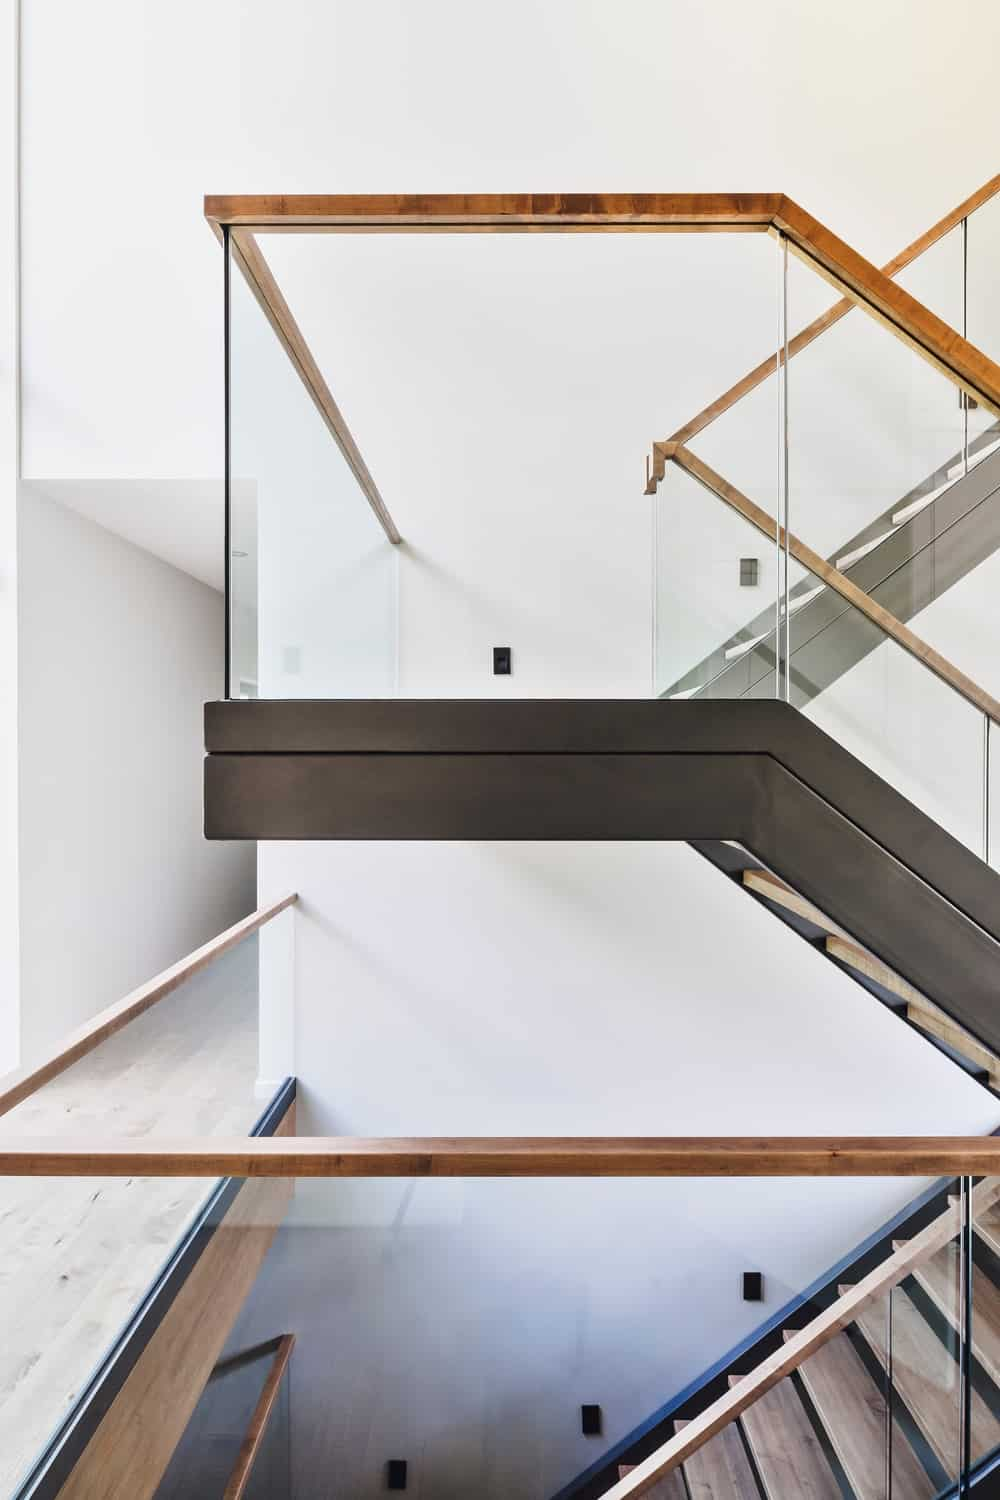 Staircase with glass panels. Photo Credit: Ulysse Lemerise Bouchard